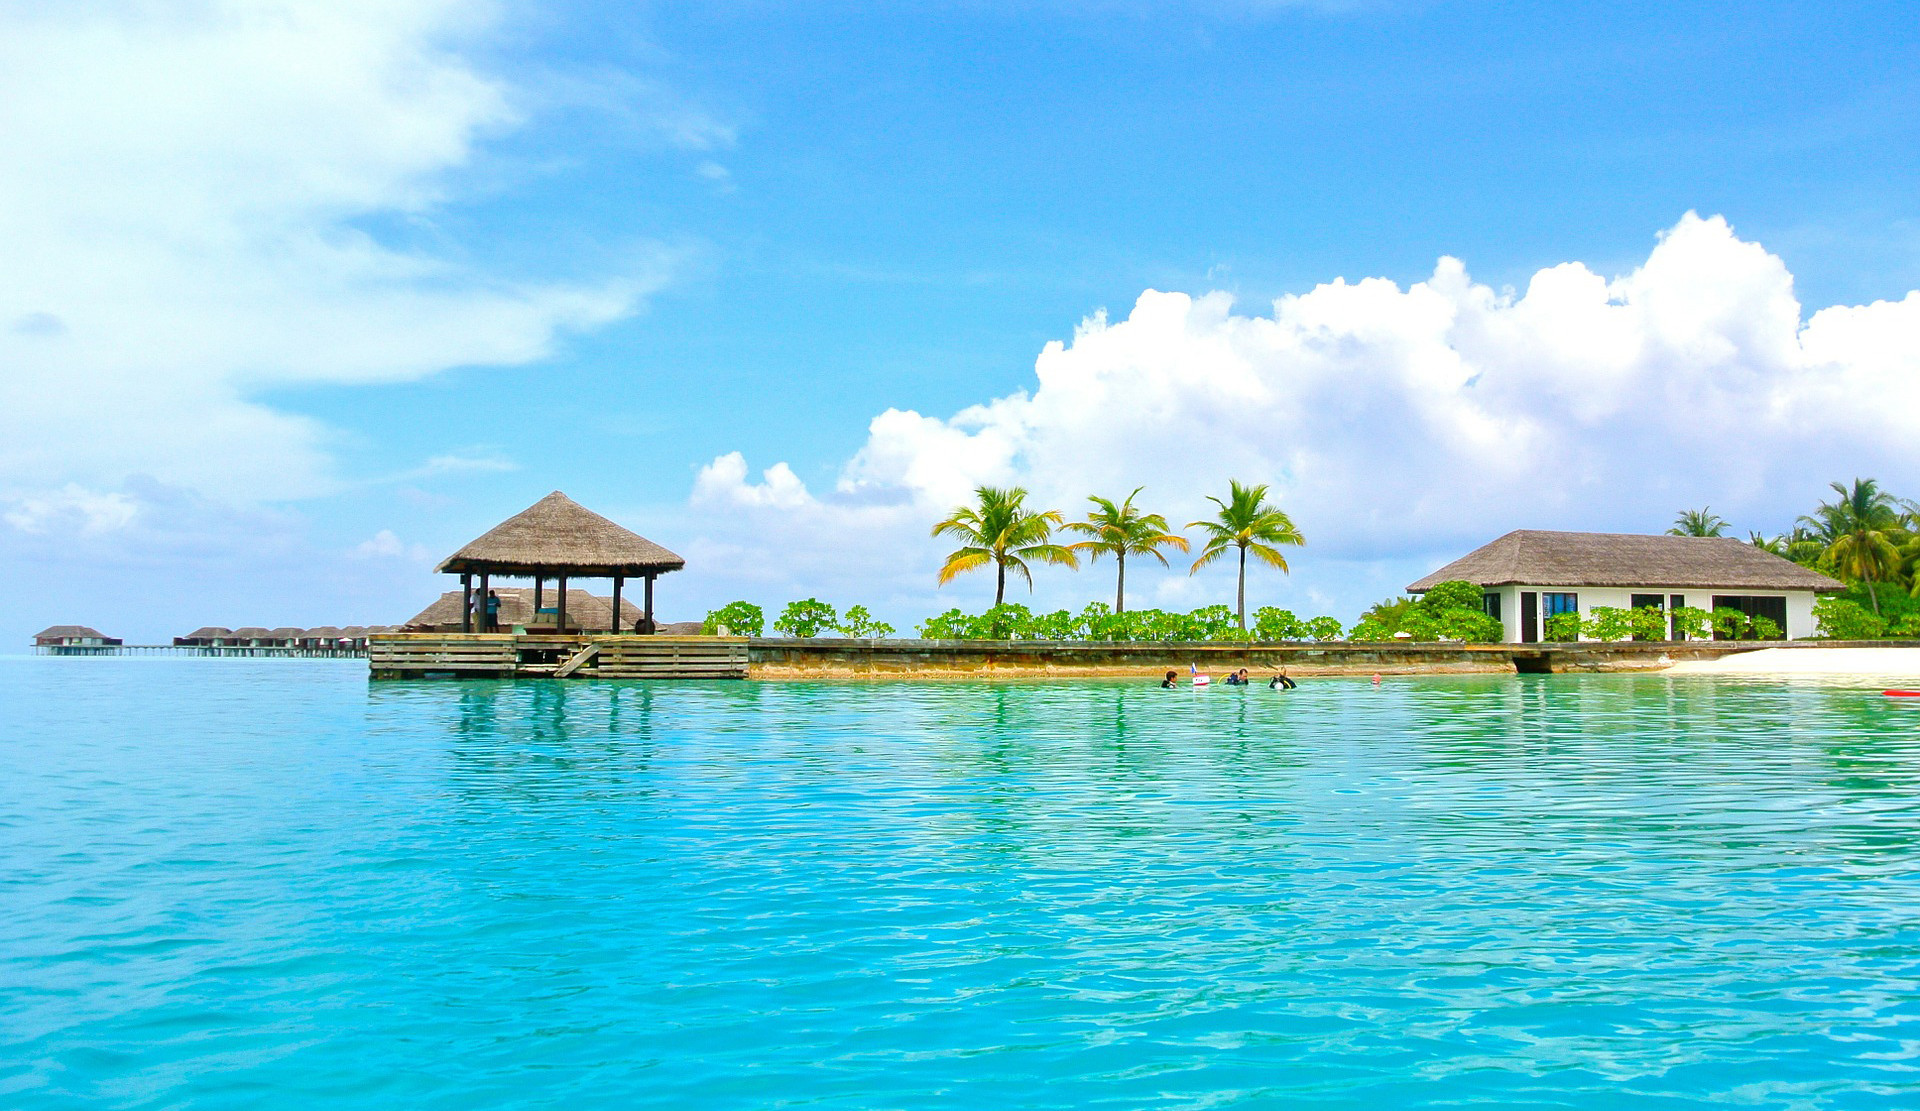 news-main-maldives-is-on-lonely-planets-list-of-top-destinations-for-2021.1610027368.jpg